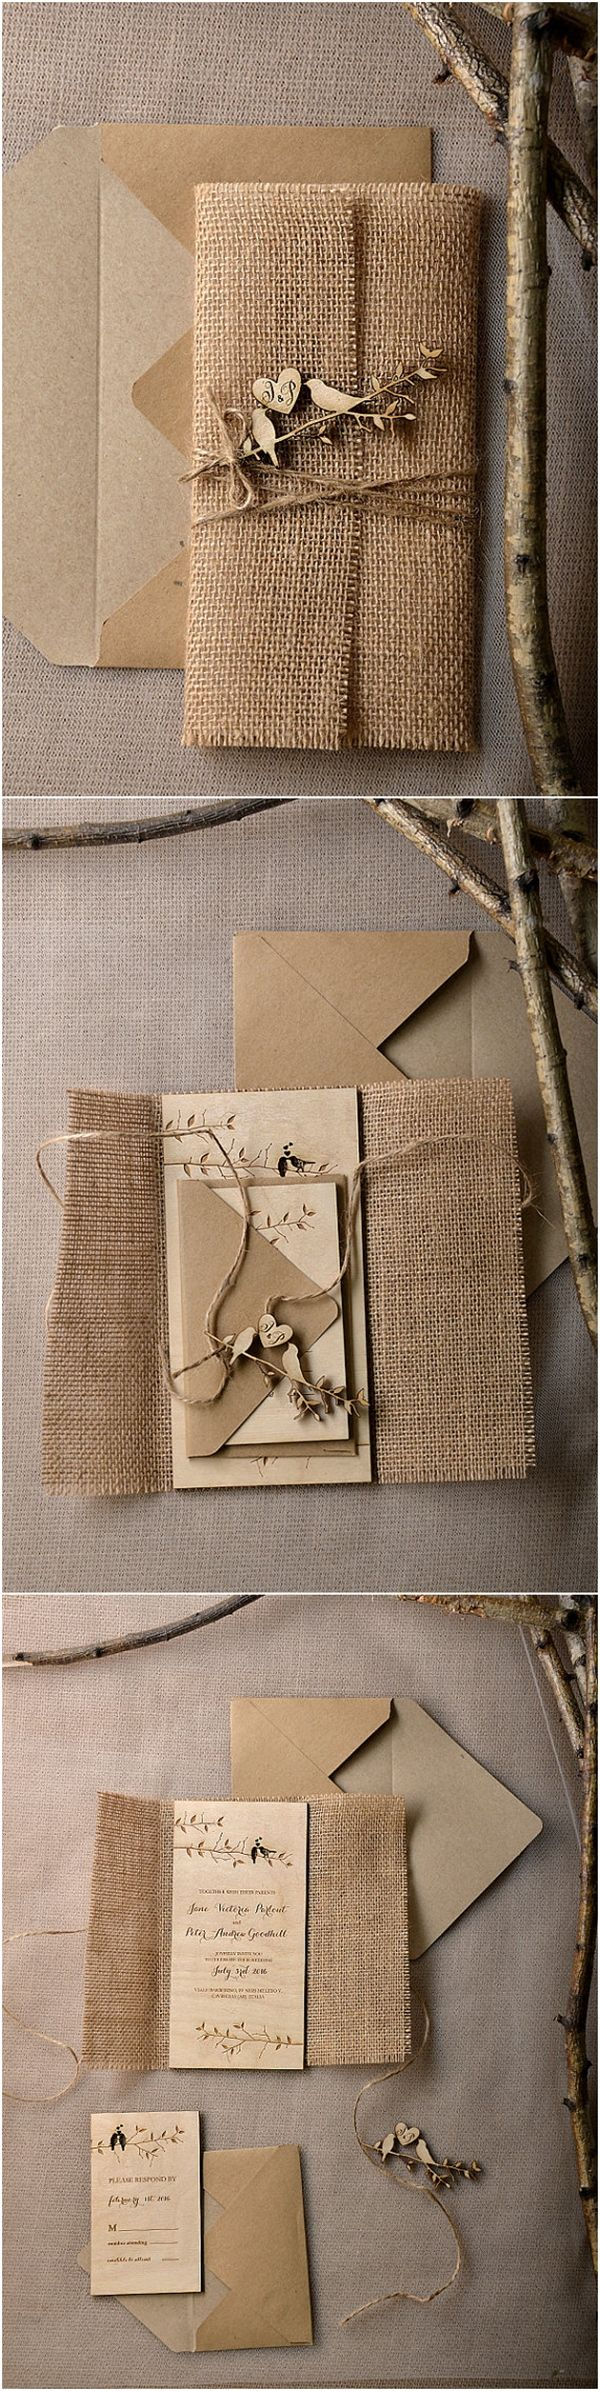 Eco Burlap Rustic Country Laser cut Wood Wedding Invitation Suite                                                                                                                                                     More